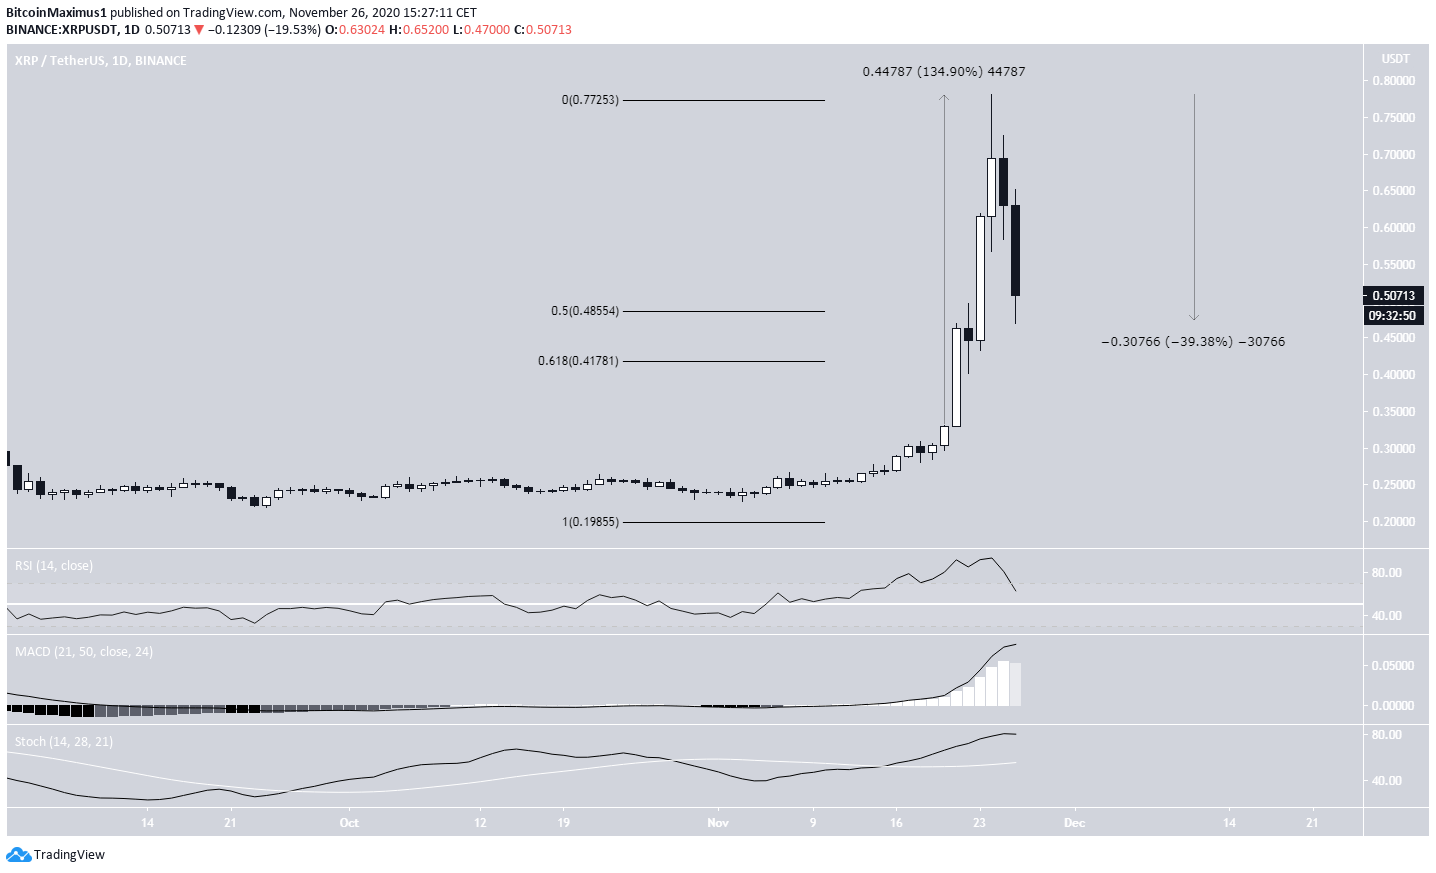 XRP Daily Movement